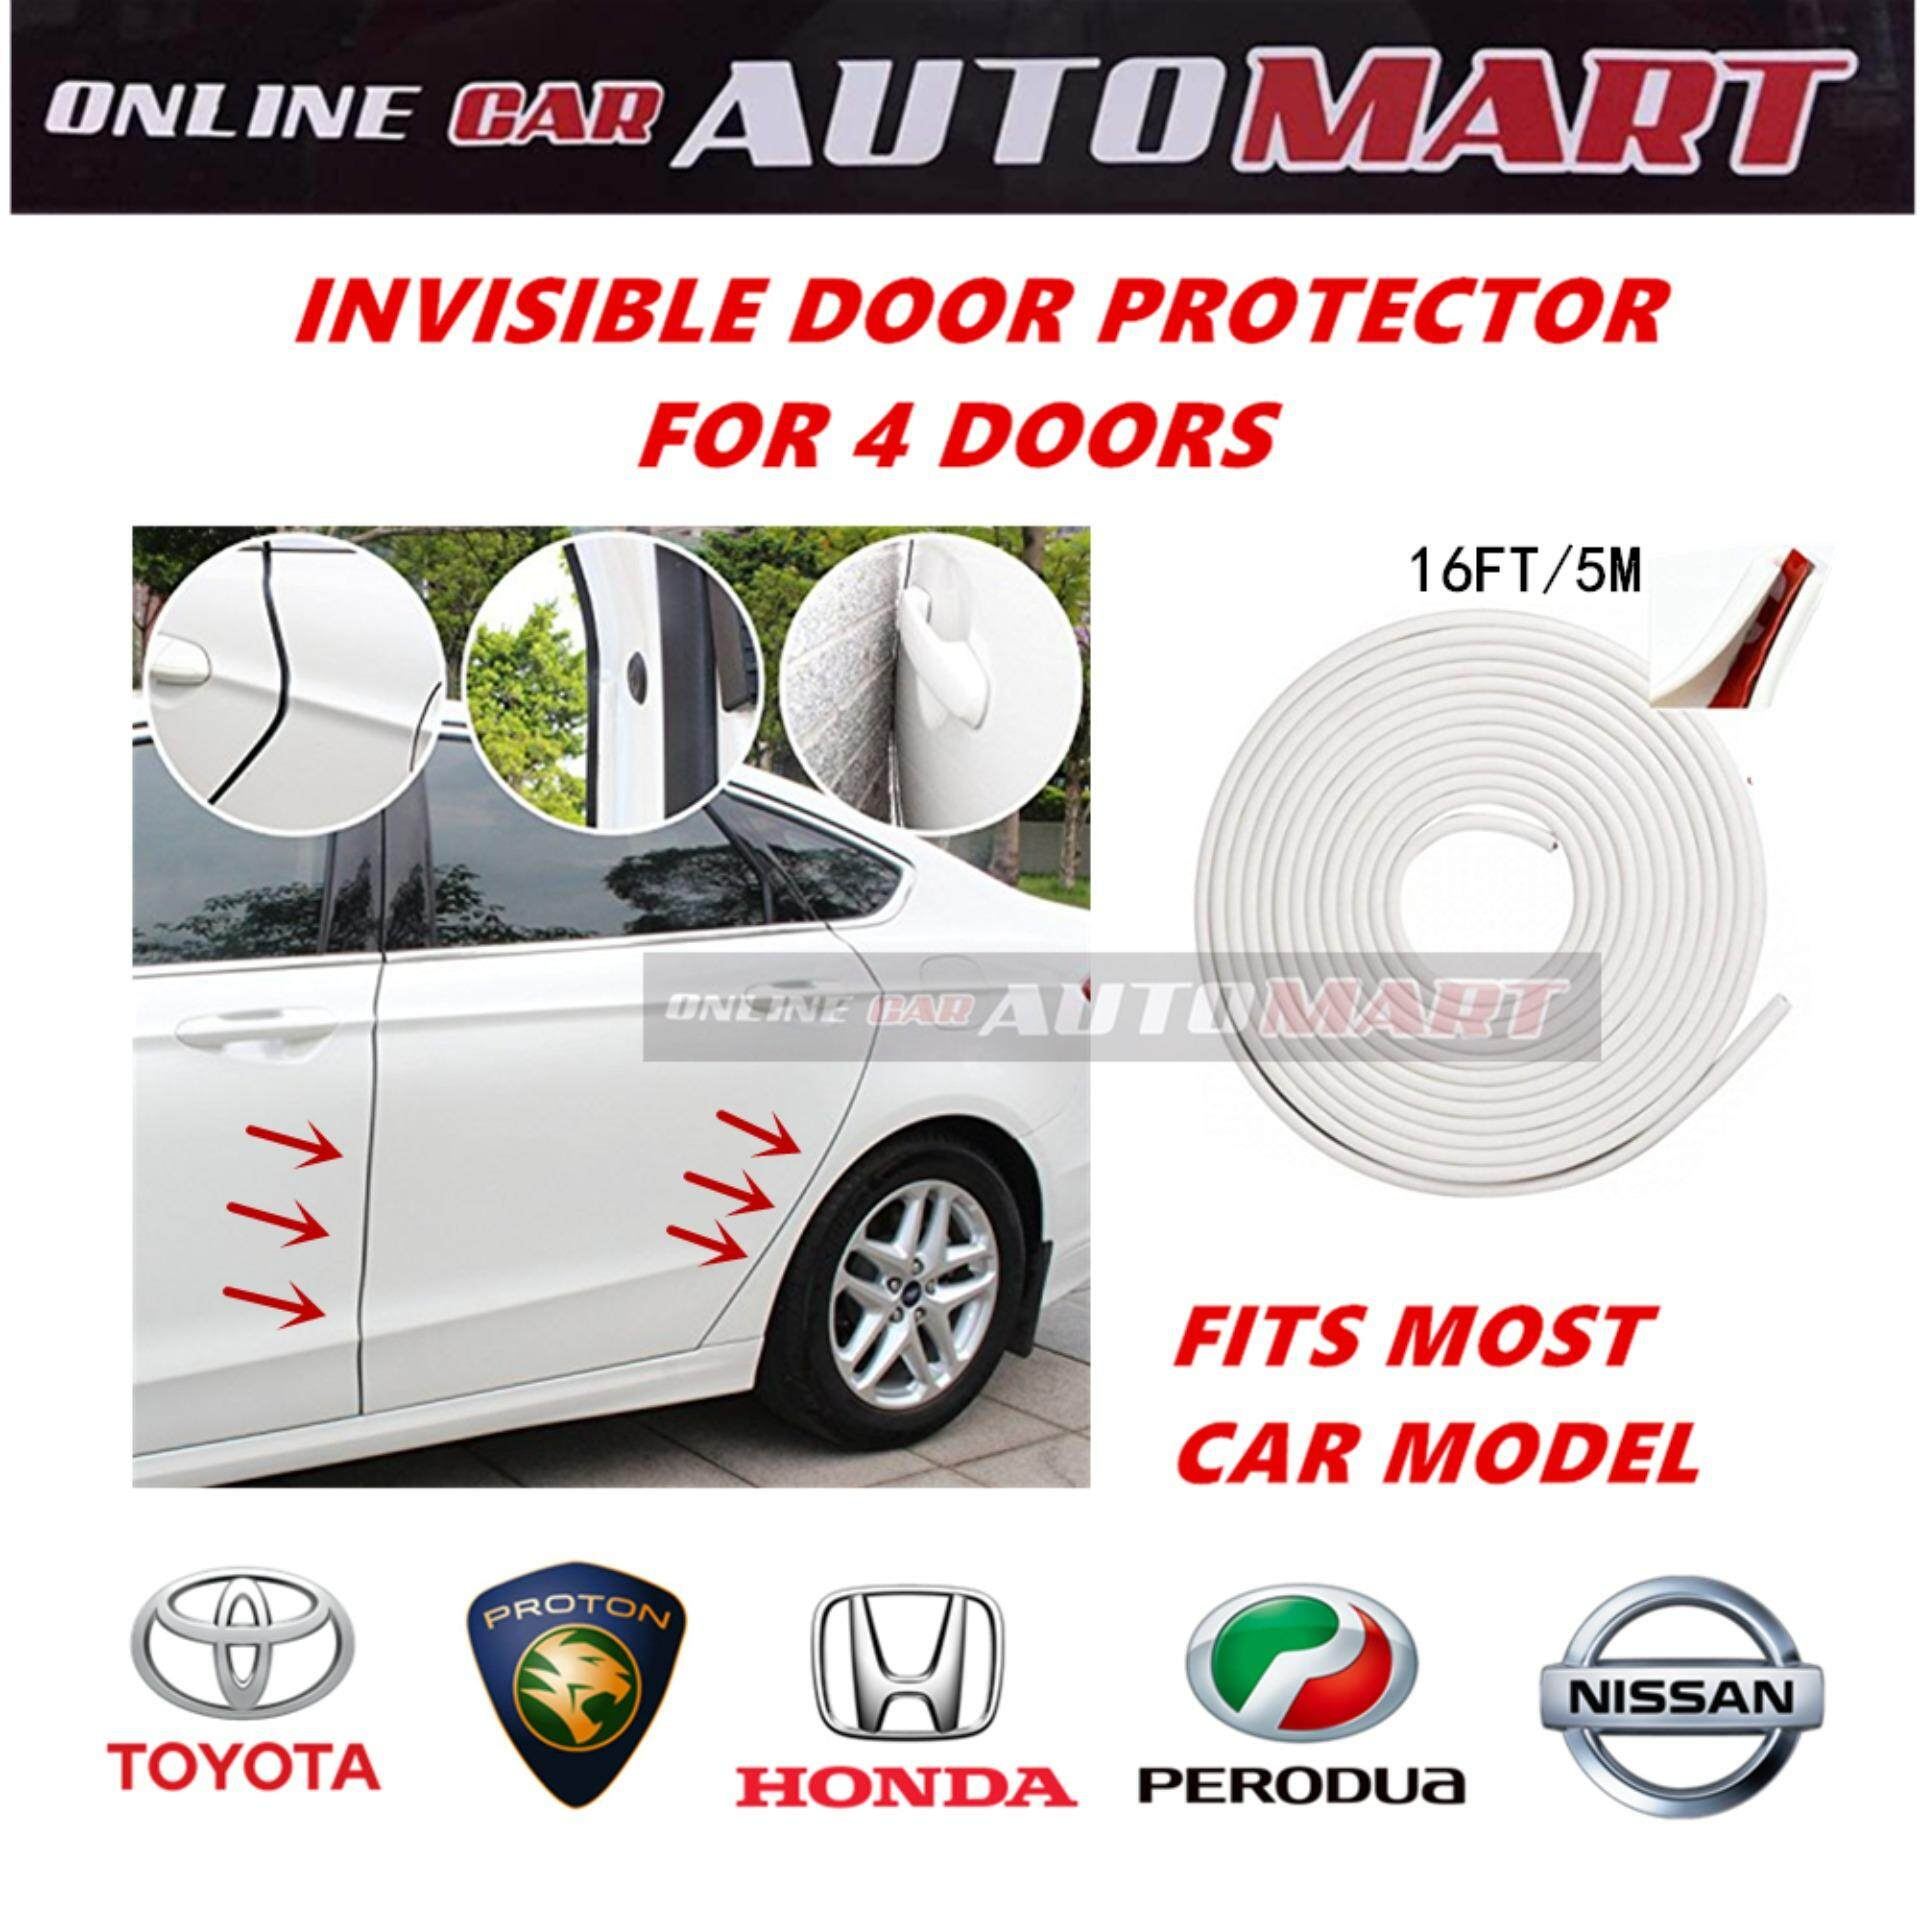 16FT/5M (WHITE) Moulding Trim Rubber Strip Door Scratch Protector Car Styling Invisible Rubber Tape (4 Doors) Fits Most Proton,Perodua,Toyota,Honda,Nissan Cars